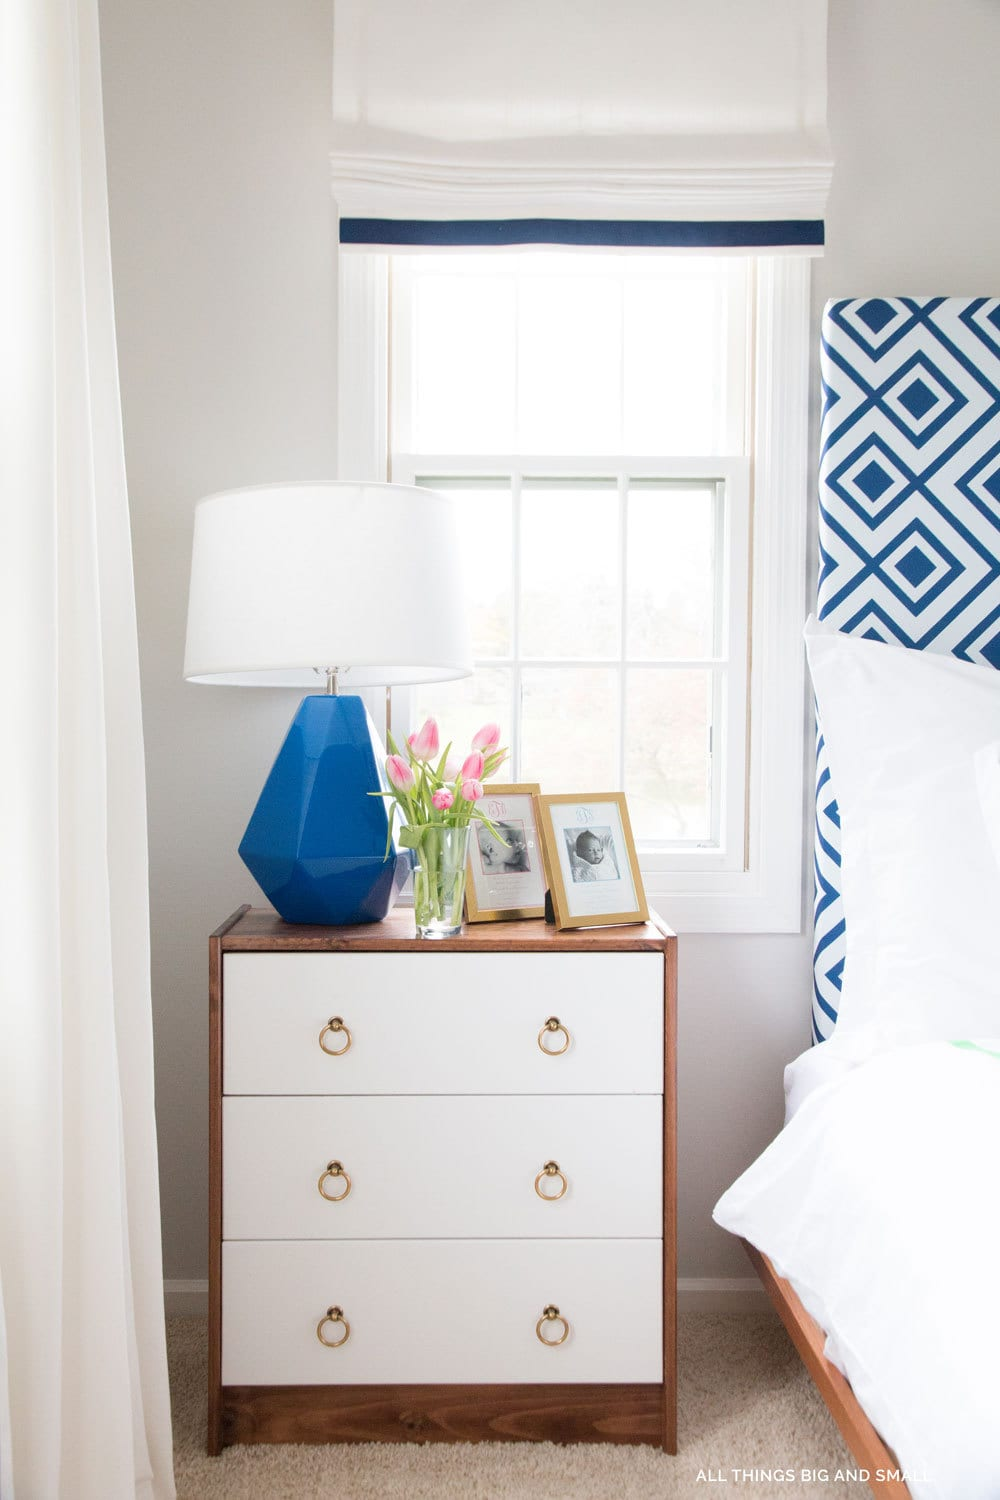 DIY Curtains and DIY Roman Shade DIY Bedside Table DIY Headboard- ALL THINGS BIG AND SMALL